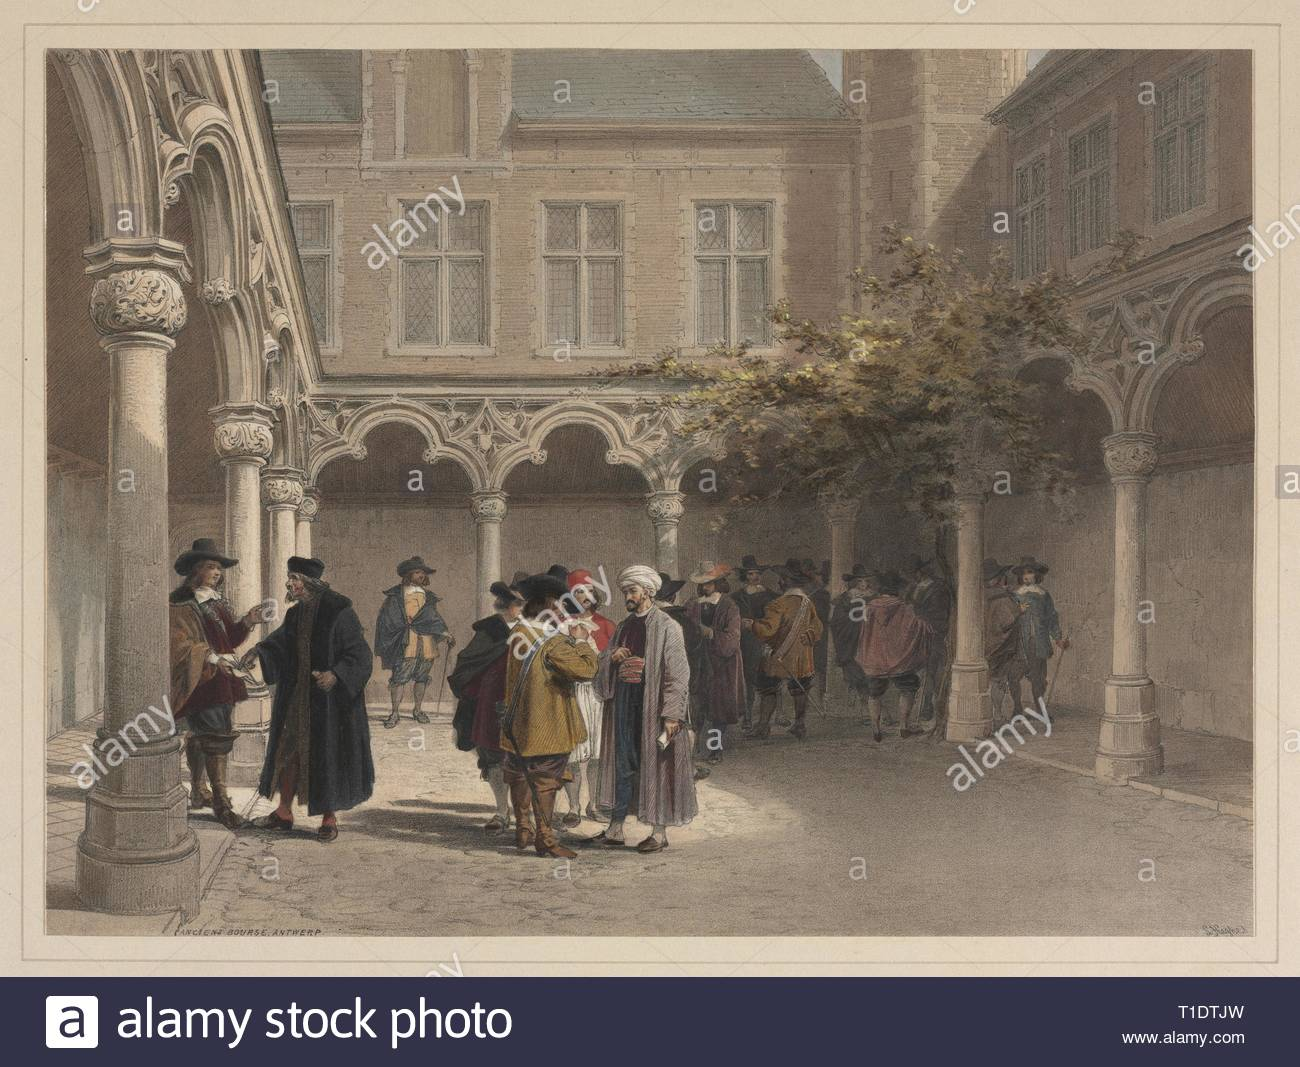 Ancien Bourse, Antwerp. Louis Haghe (British, 1806-1885). Color lithograph with hand coloring. - Stock Image